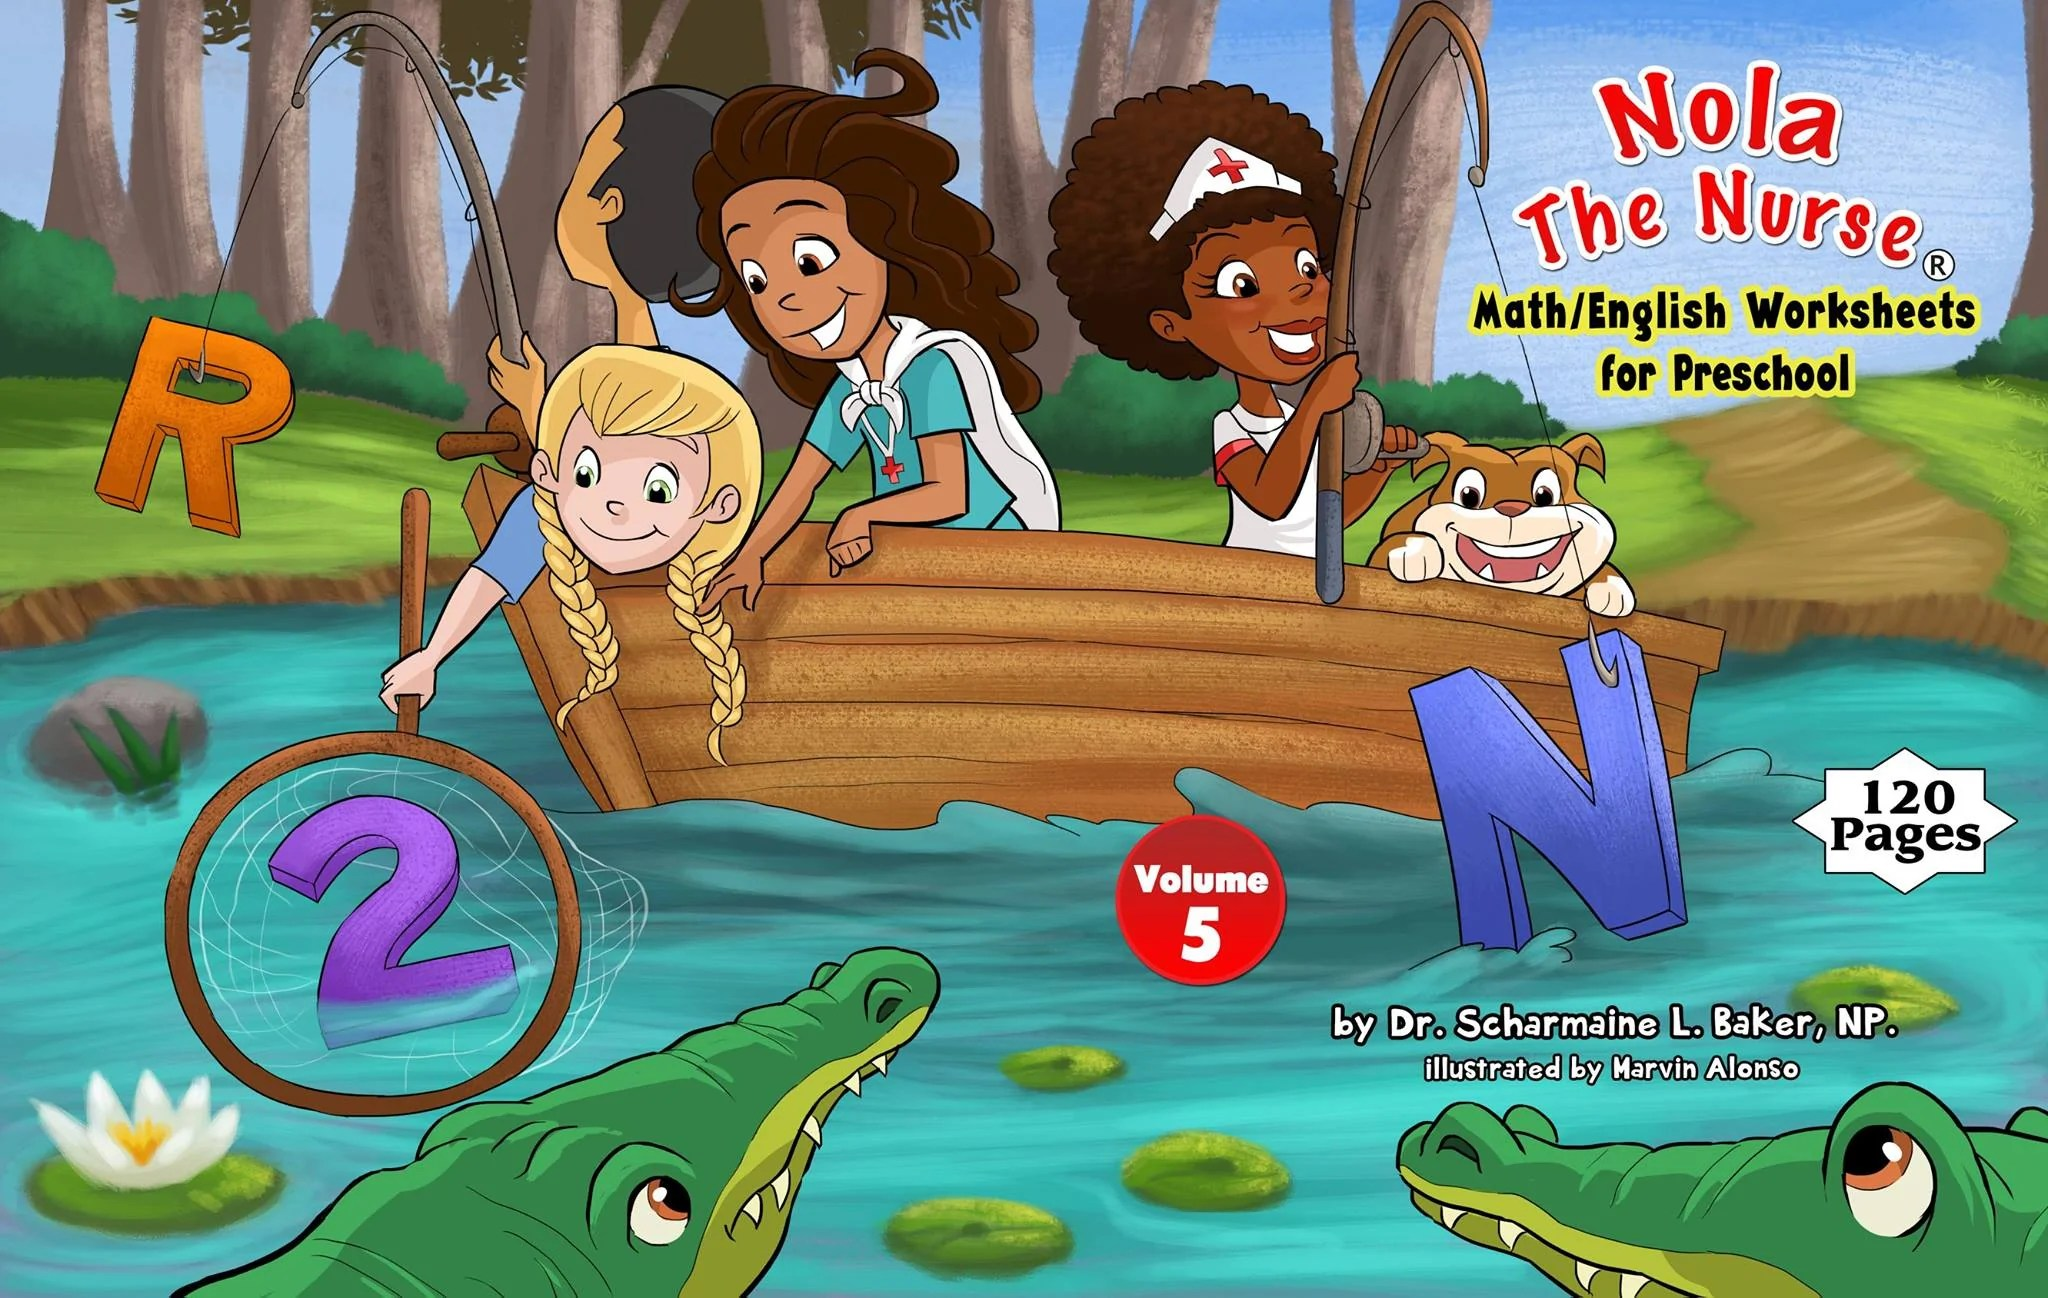 Nola the Nurse     Math English Worksheets for Preschool Vol  5     Nola     Nola the Nurse     Math English Worksheets for Preschool Vol  5